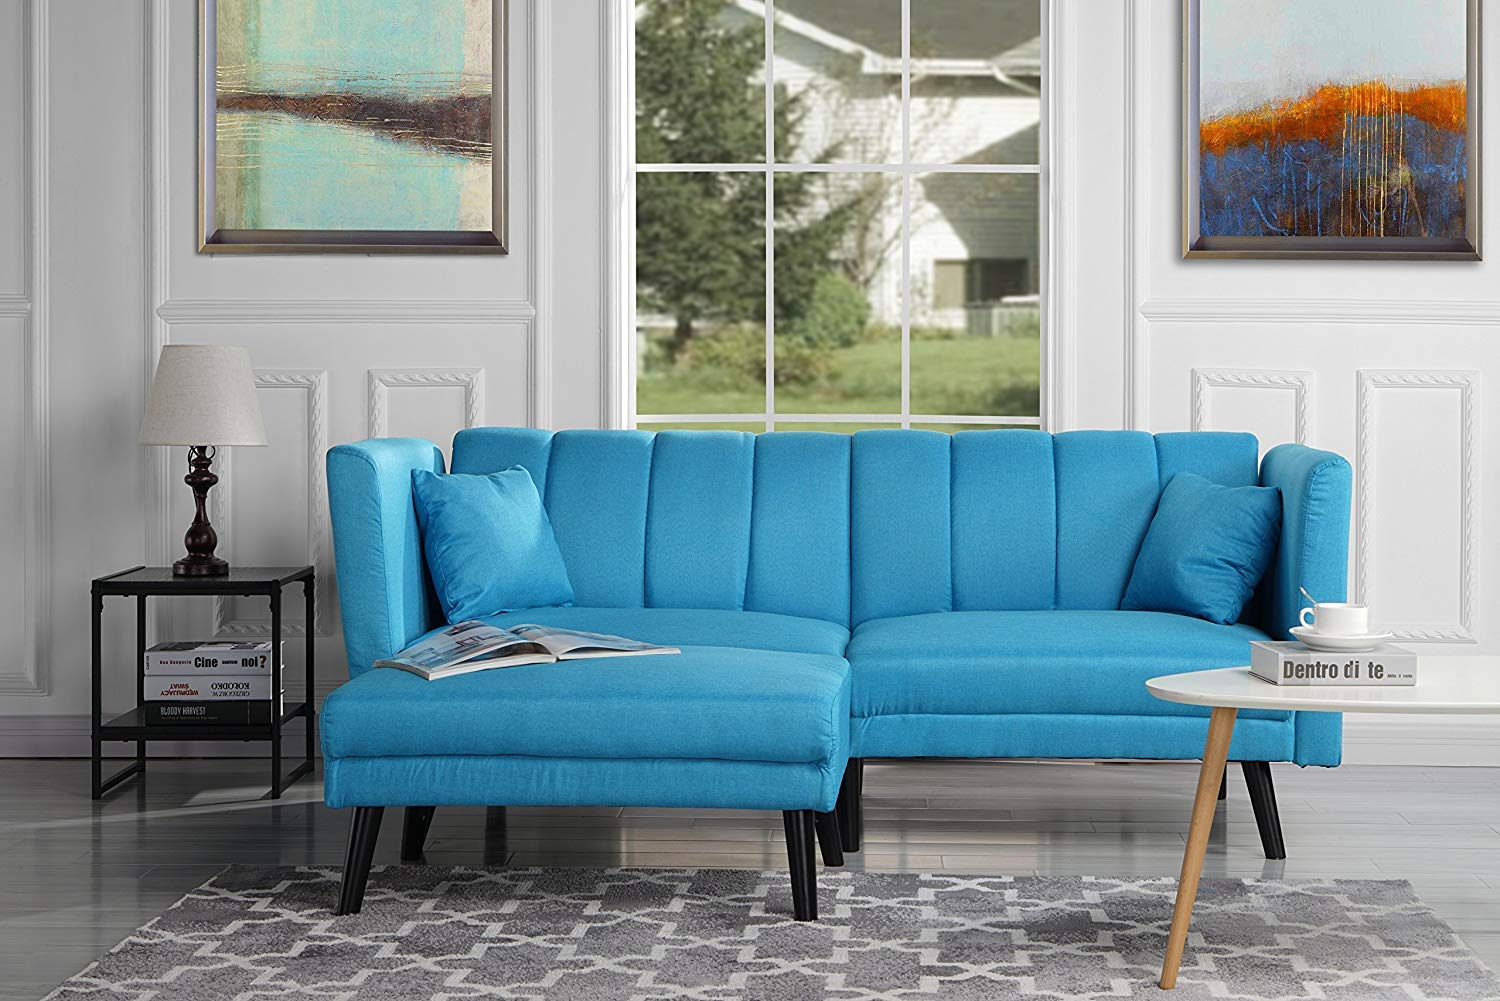 Futon Sleeper Sofa Bed Couch, Convertible Sky Blue Futon Splitback Sofa with Chaise (Sofa to Bed Feature) Modern Futon Sofa Beds L-Shaped Lounger Futon Sofa Couch for Small Space Living by Casa AndreaMilano